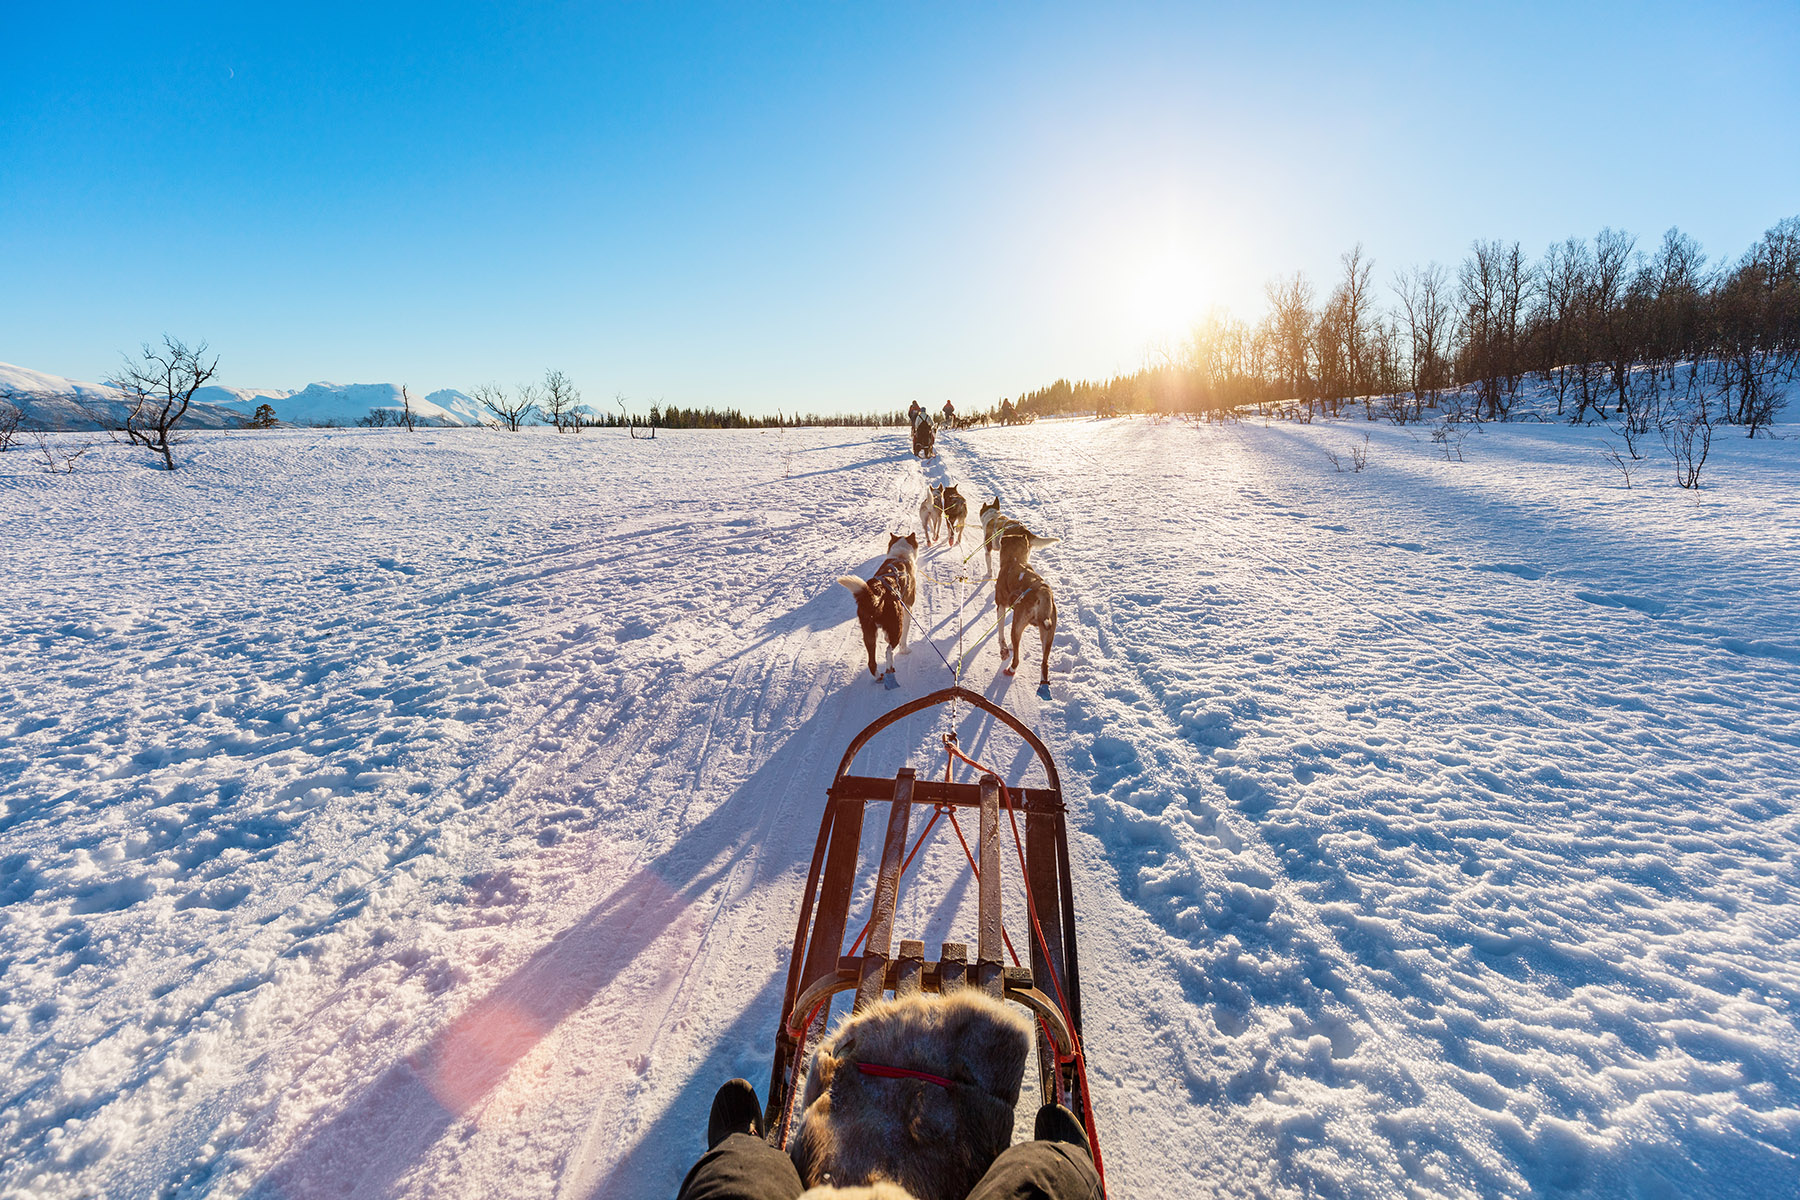 Sledding with husky dogs in Norway